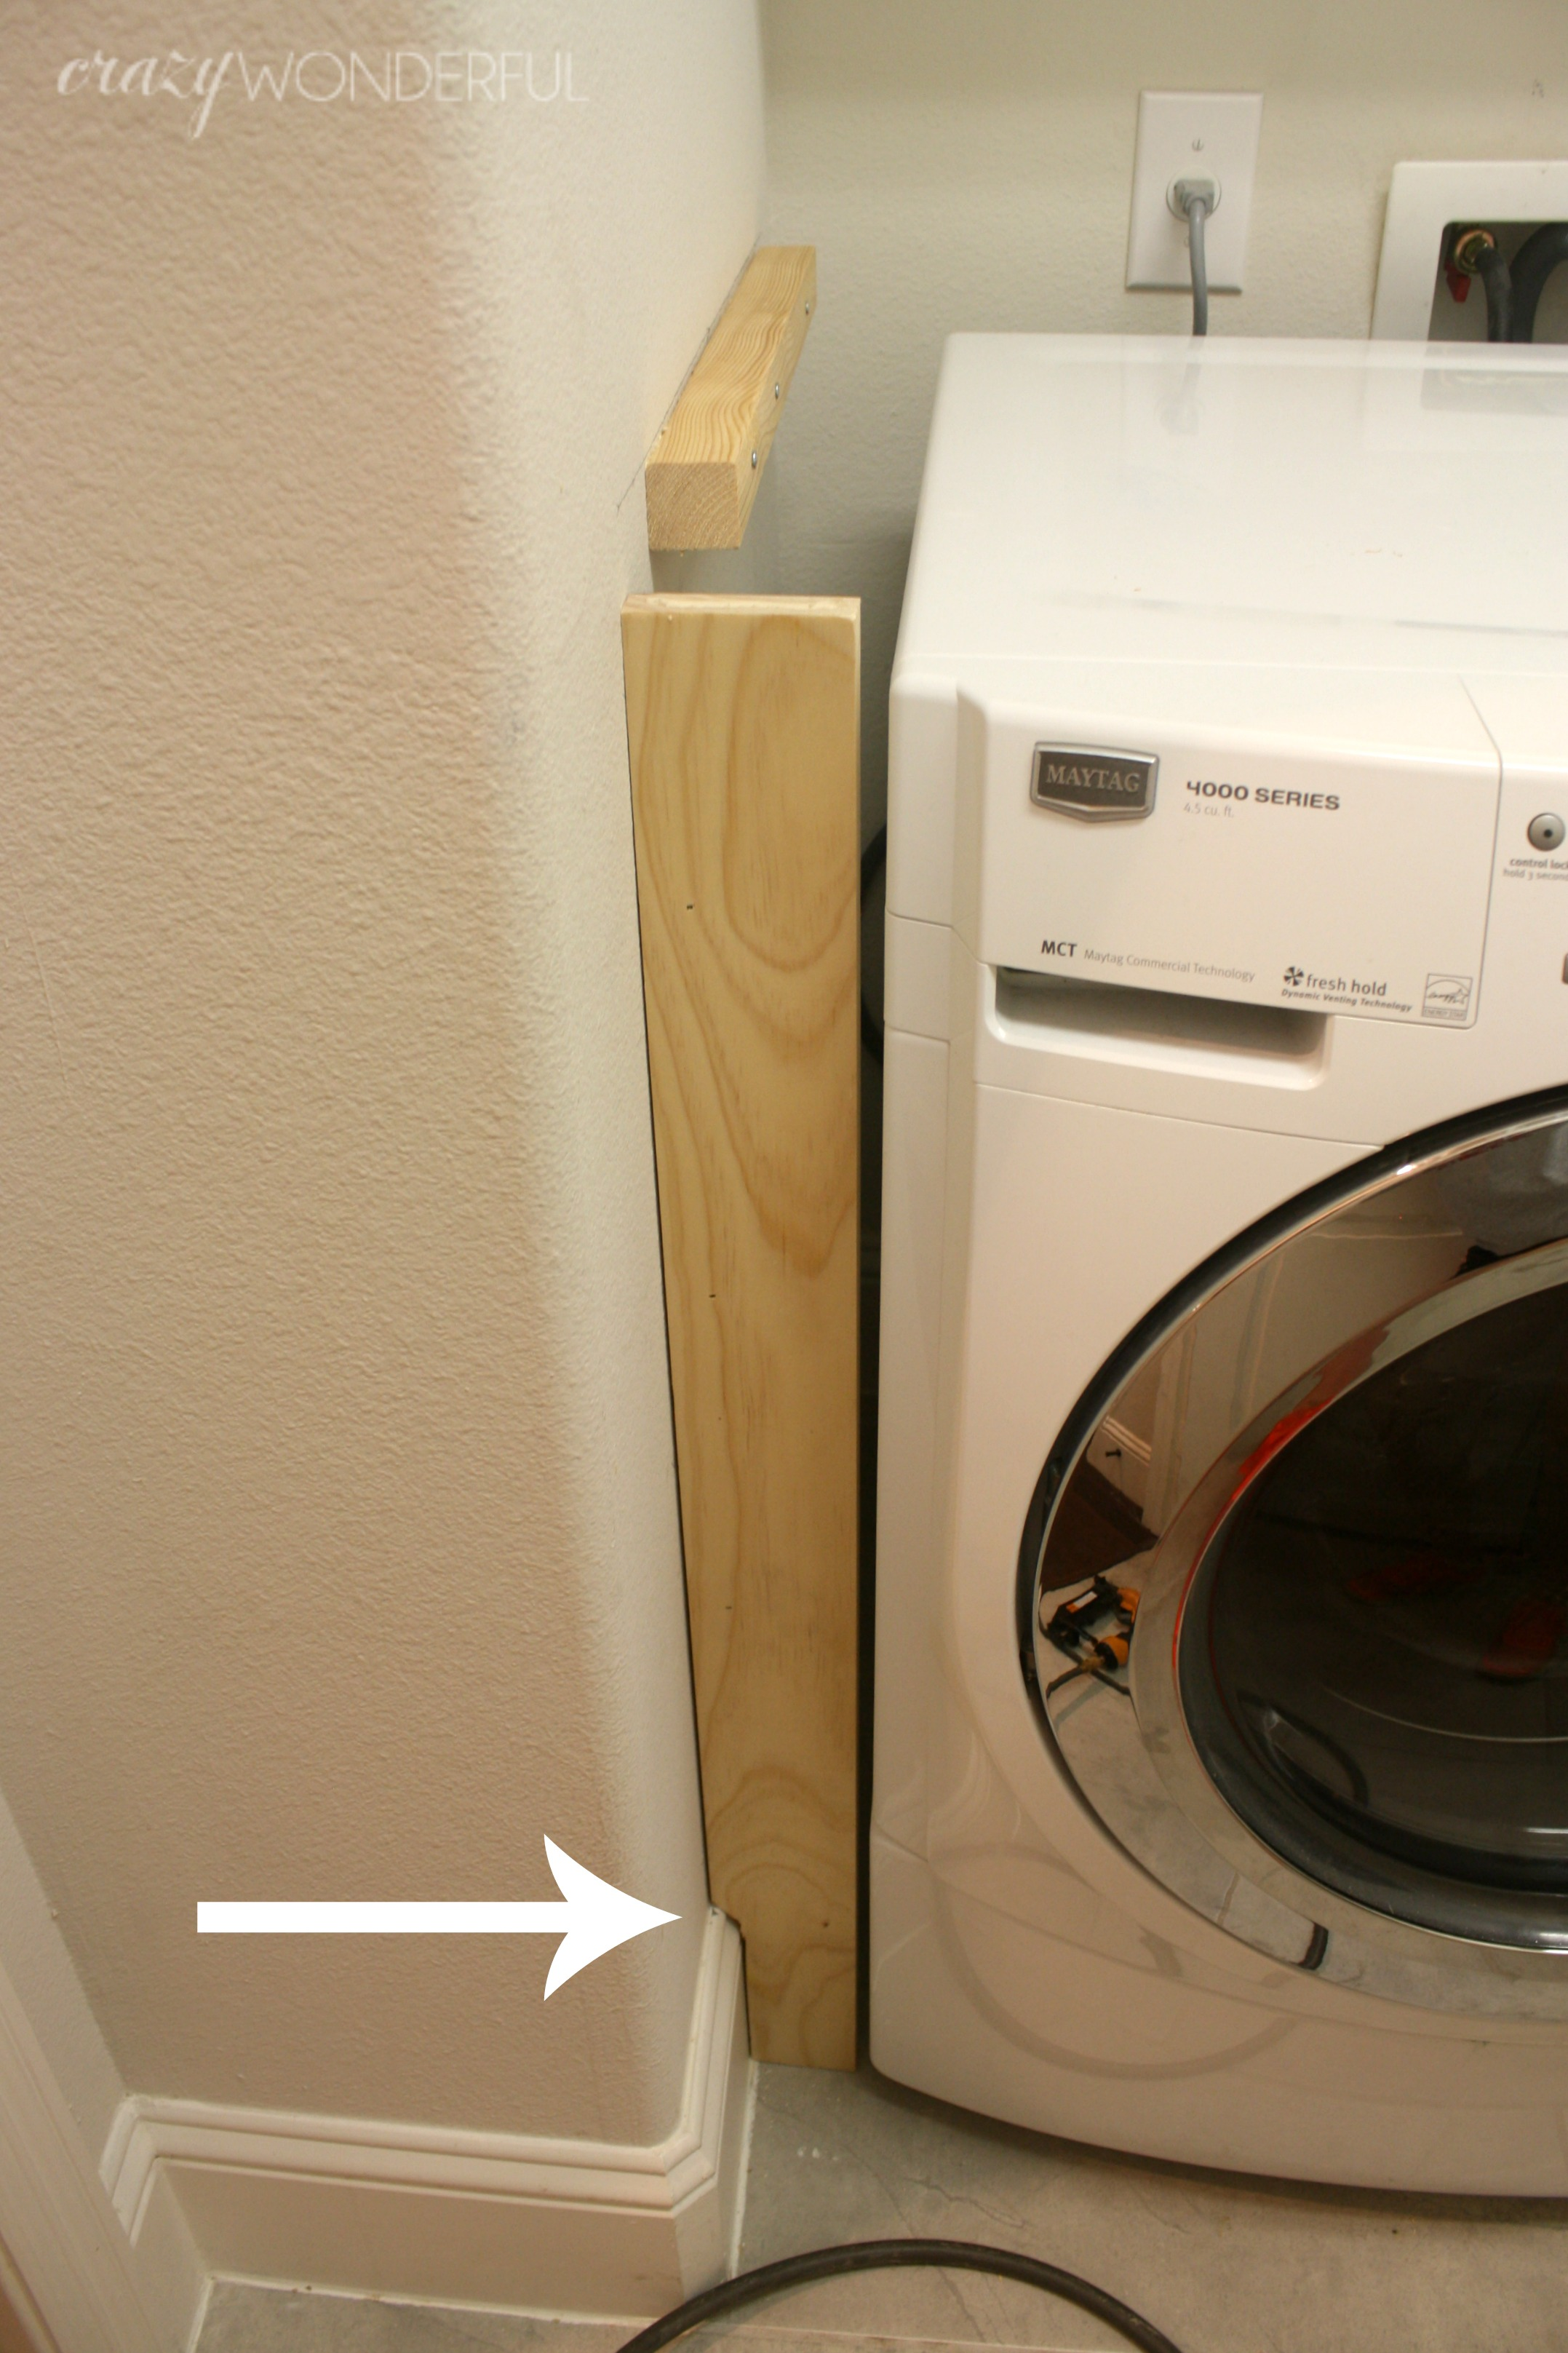 dryer and raise i pin loader pedestal the like front to washer pedestals idea this